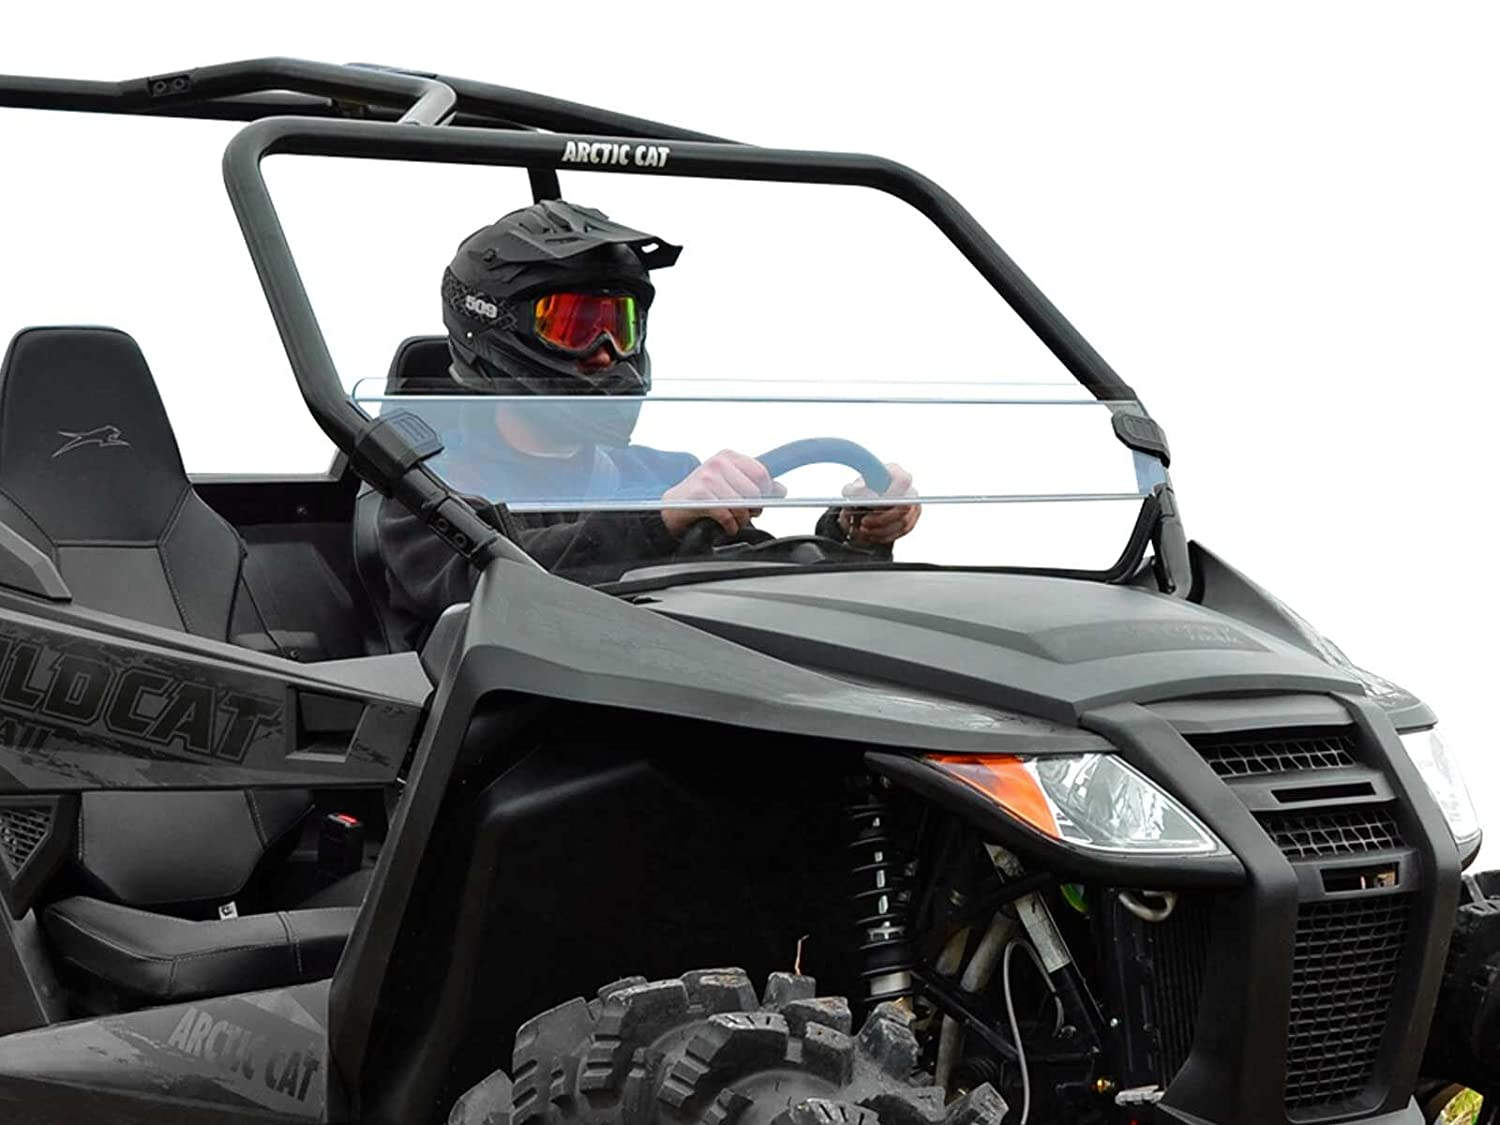 SuperATV Heavy Duty Dark Tint Standard Half Windshield for Arctic Cat Wildcat Trail Quick and Easy to Install! 2014+